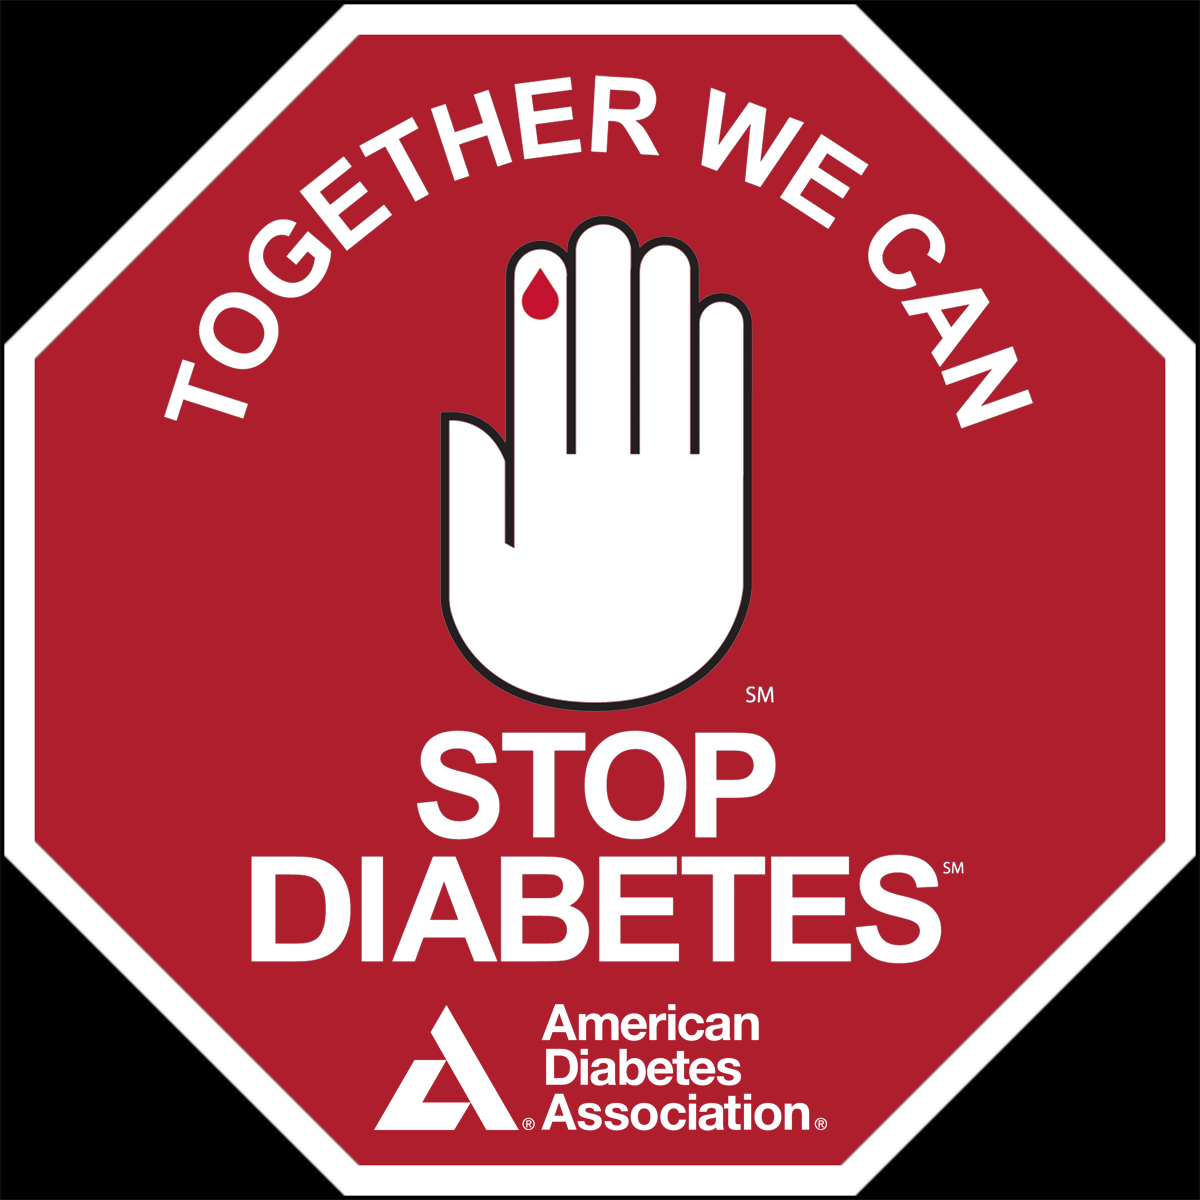 Together We Can Stop Diabetes ...